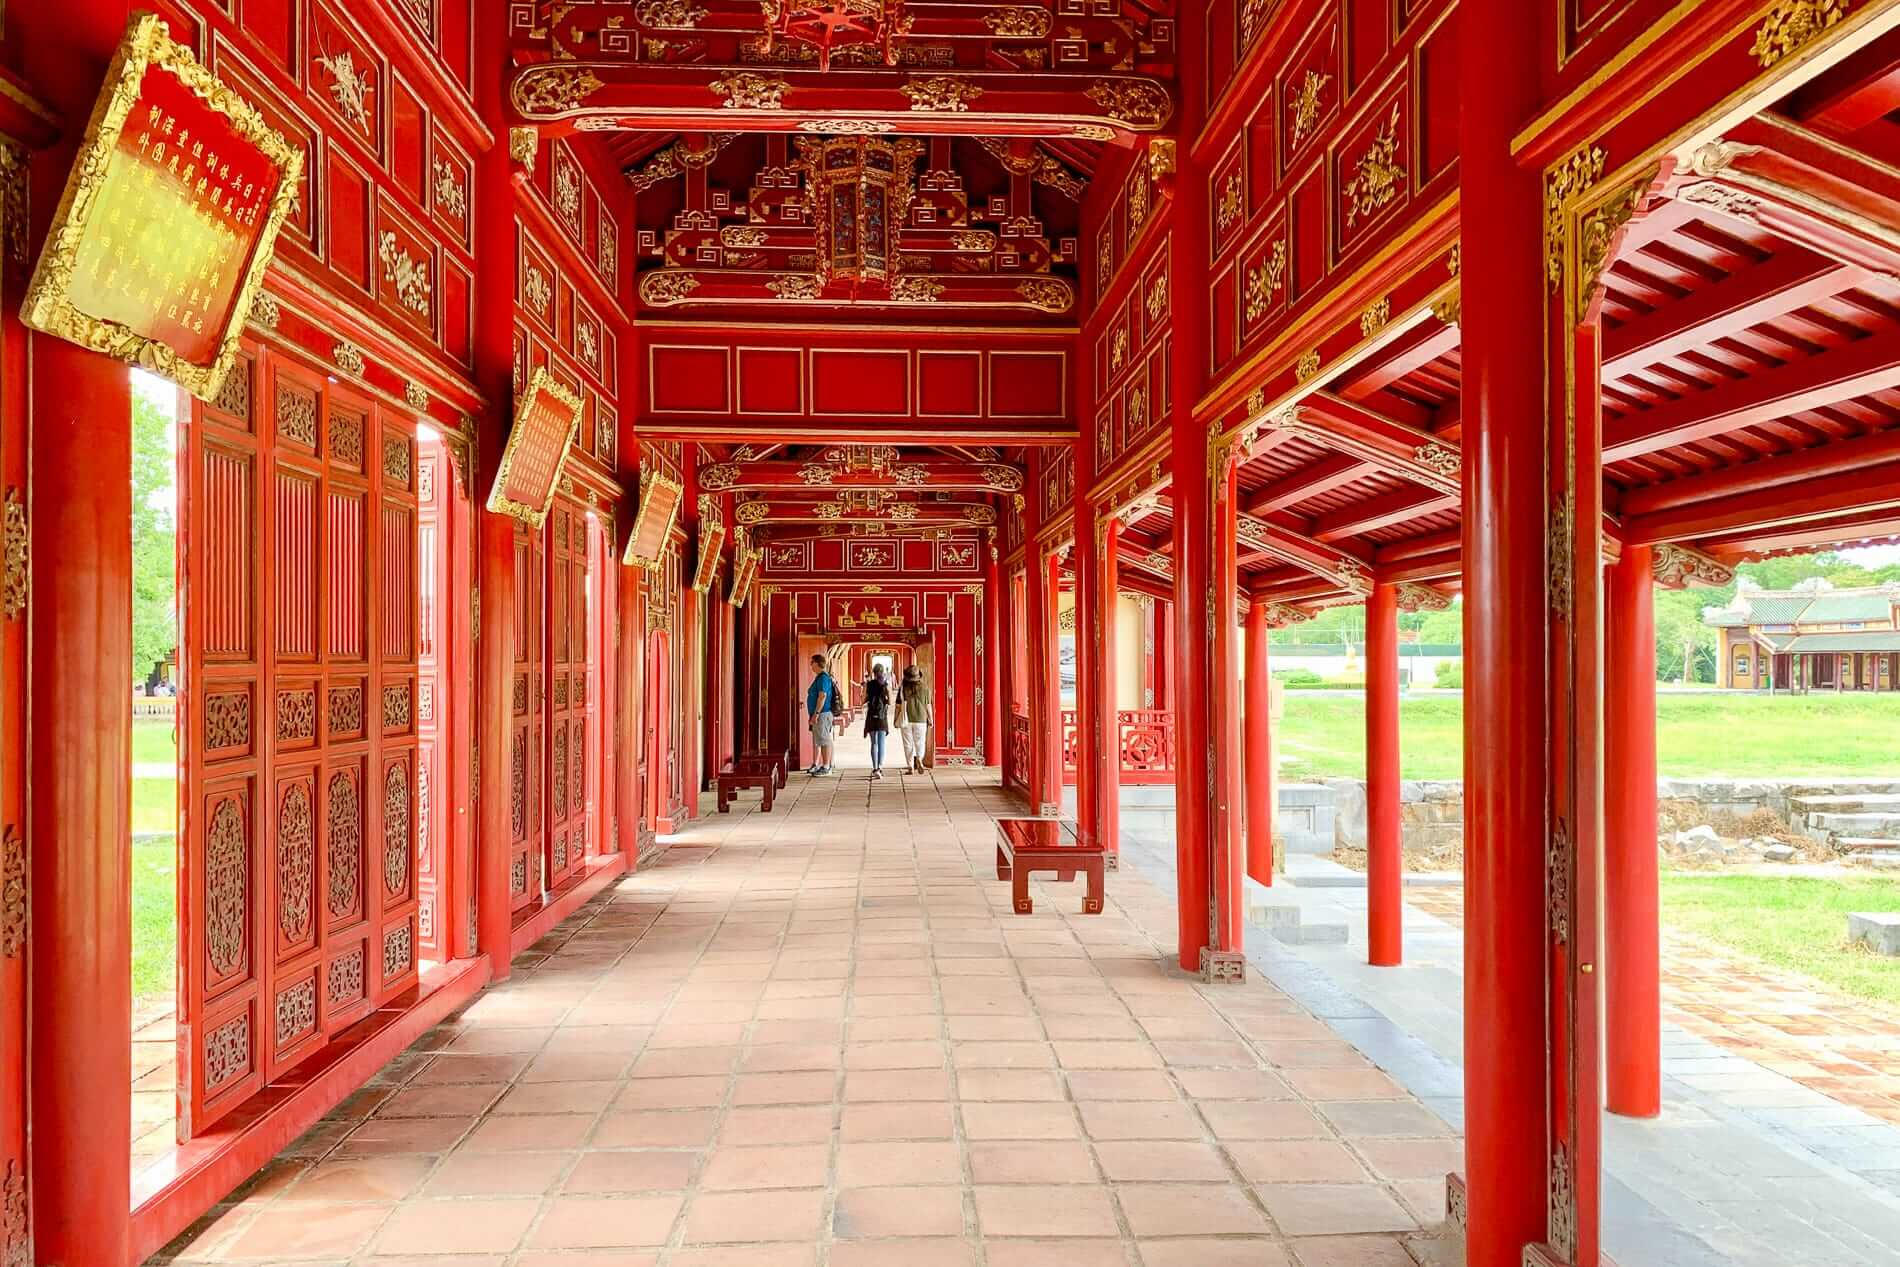 Red wood paneling at Hue Imperial City